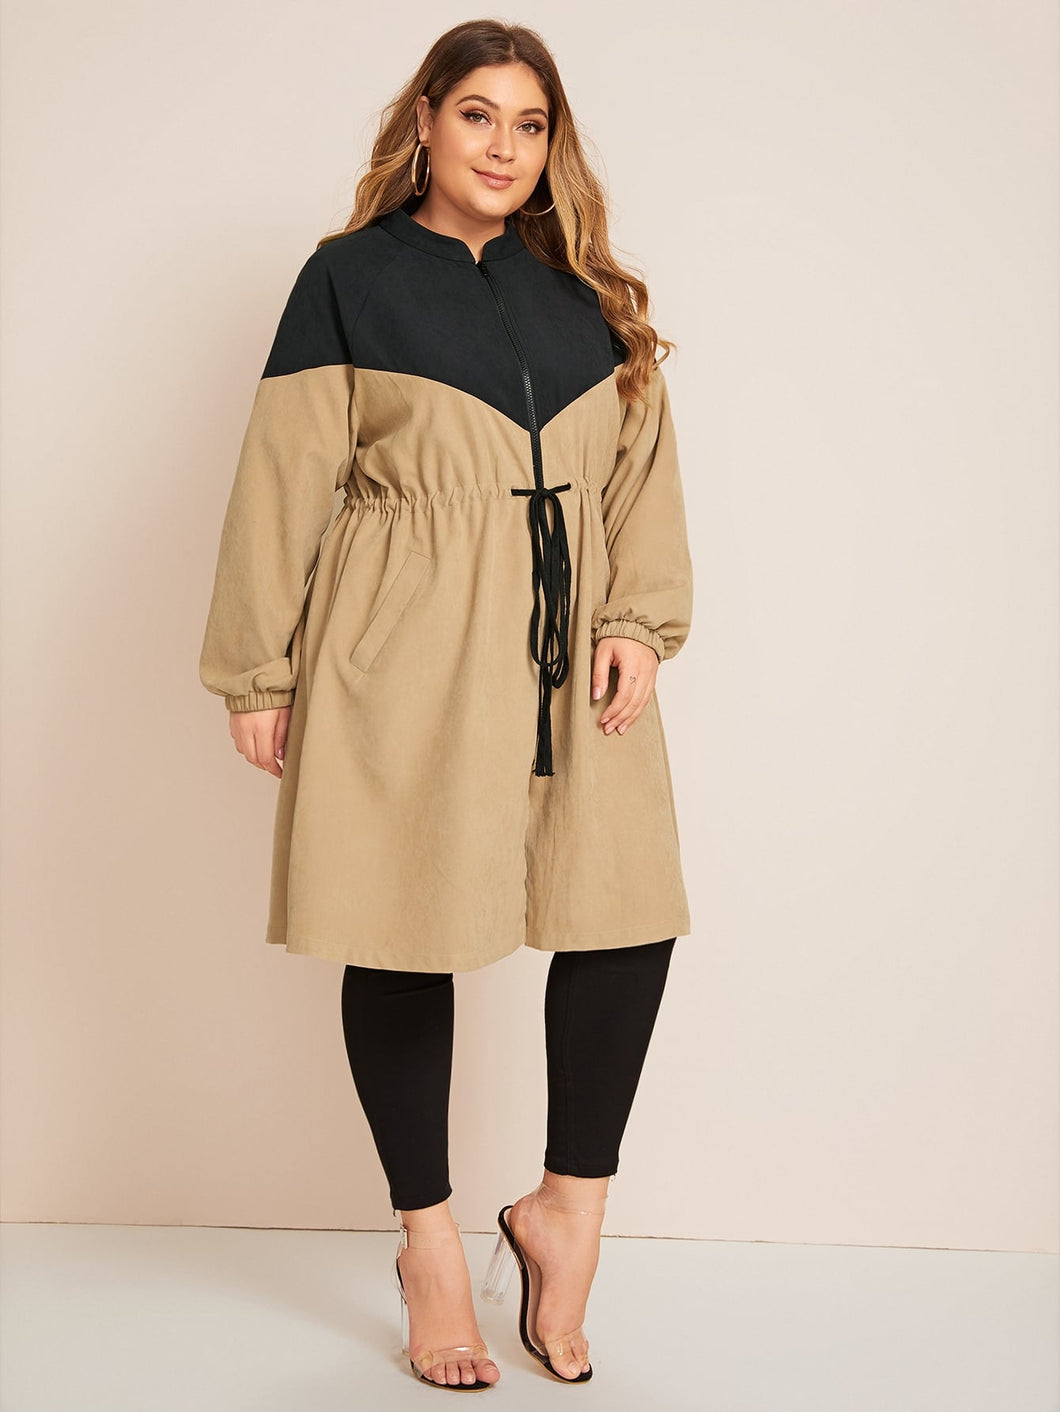 JACKET/COAT Plus Two Tone Drawstring Waist Longline Coat - EK CHIC